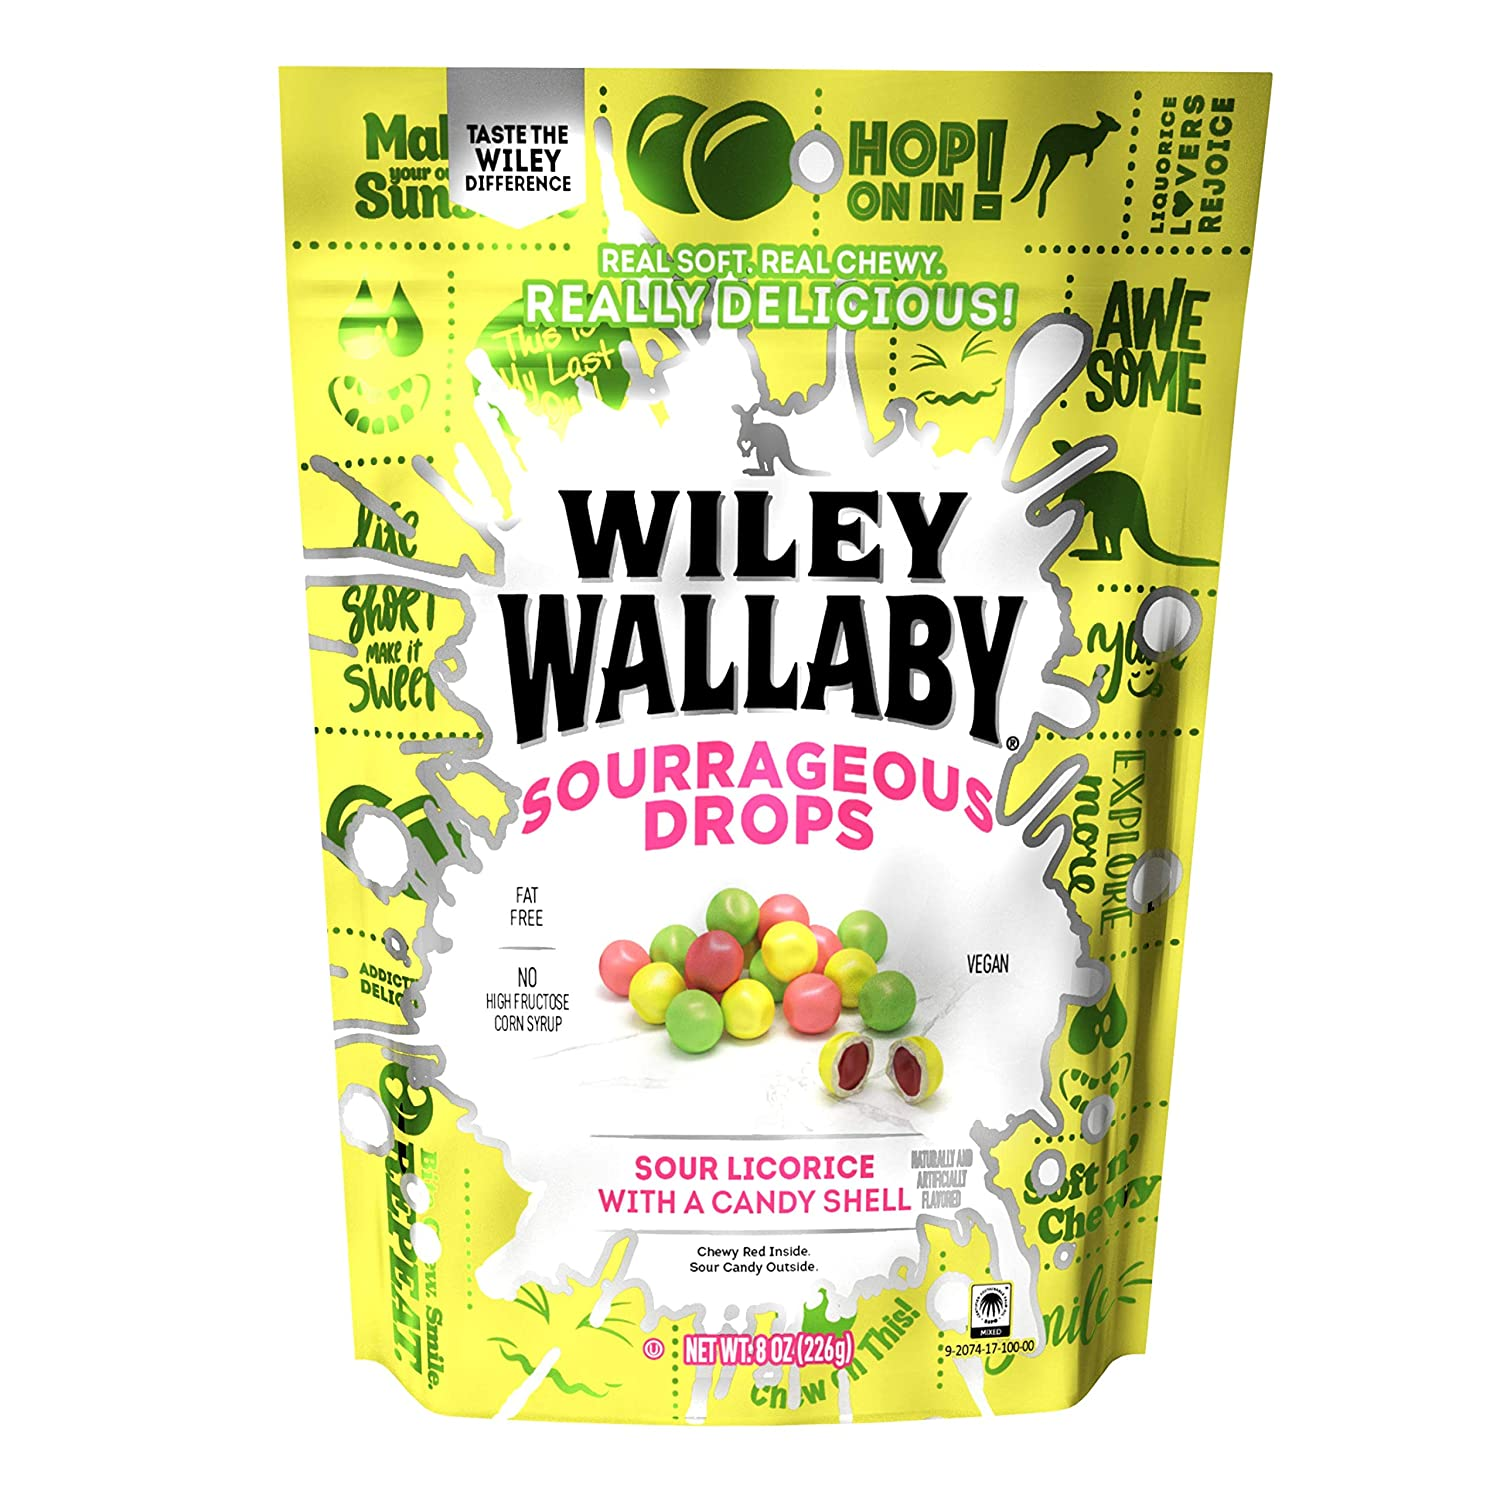 Wiley Wallaby Sourrageous Drops, Mix of Watermelon, Green Apple & Lemon with Sour Red Center, 8 Ounce Bag